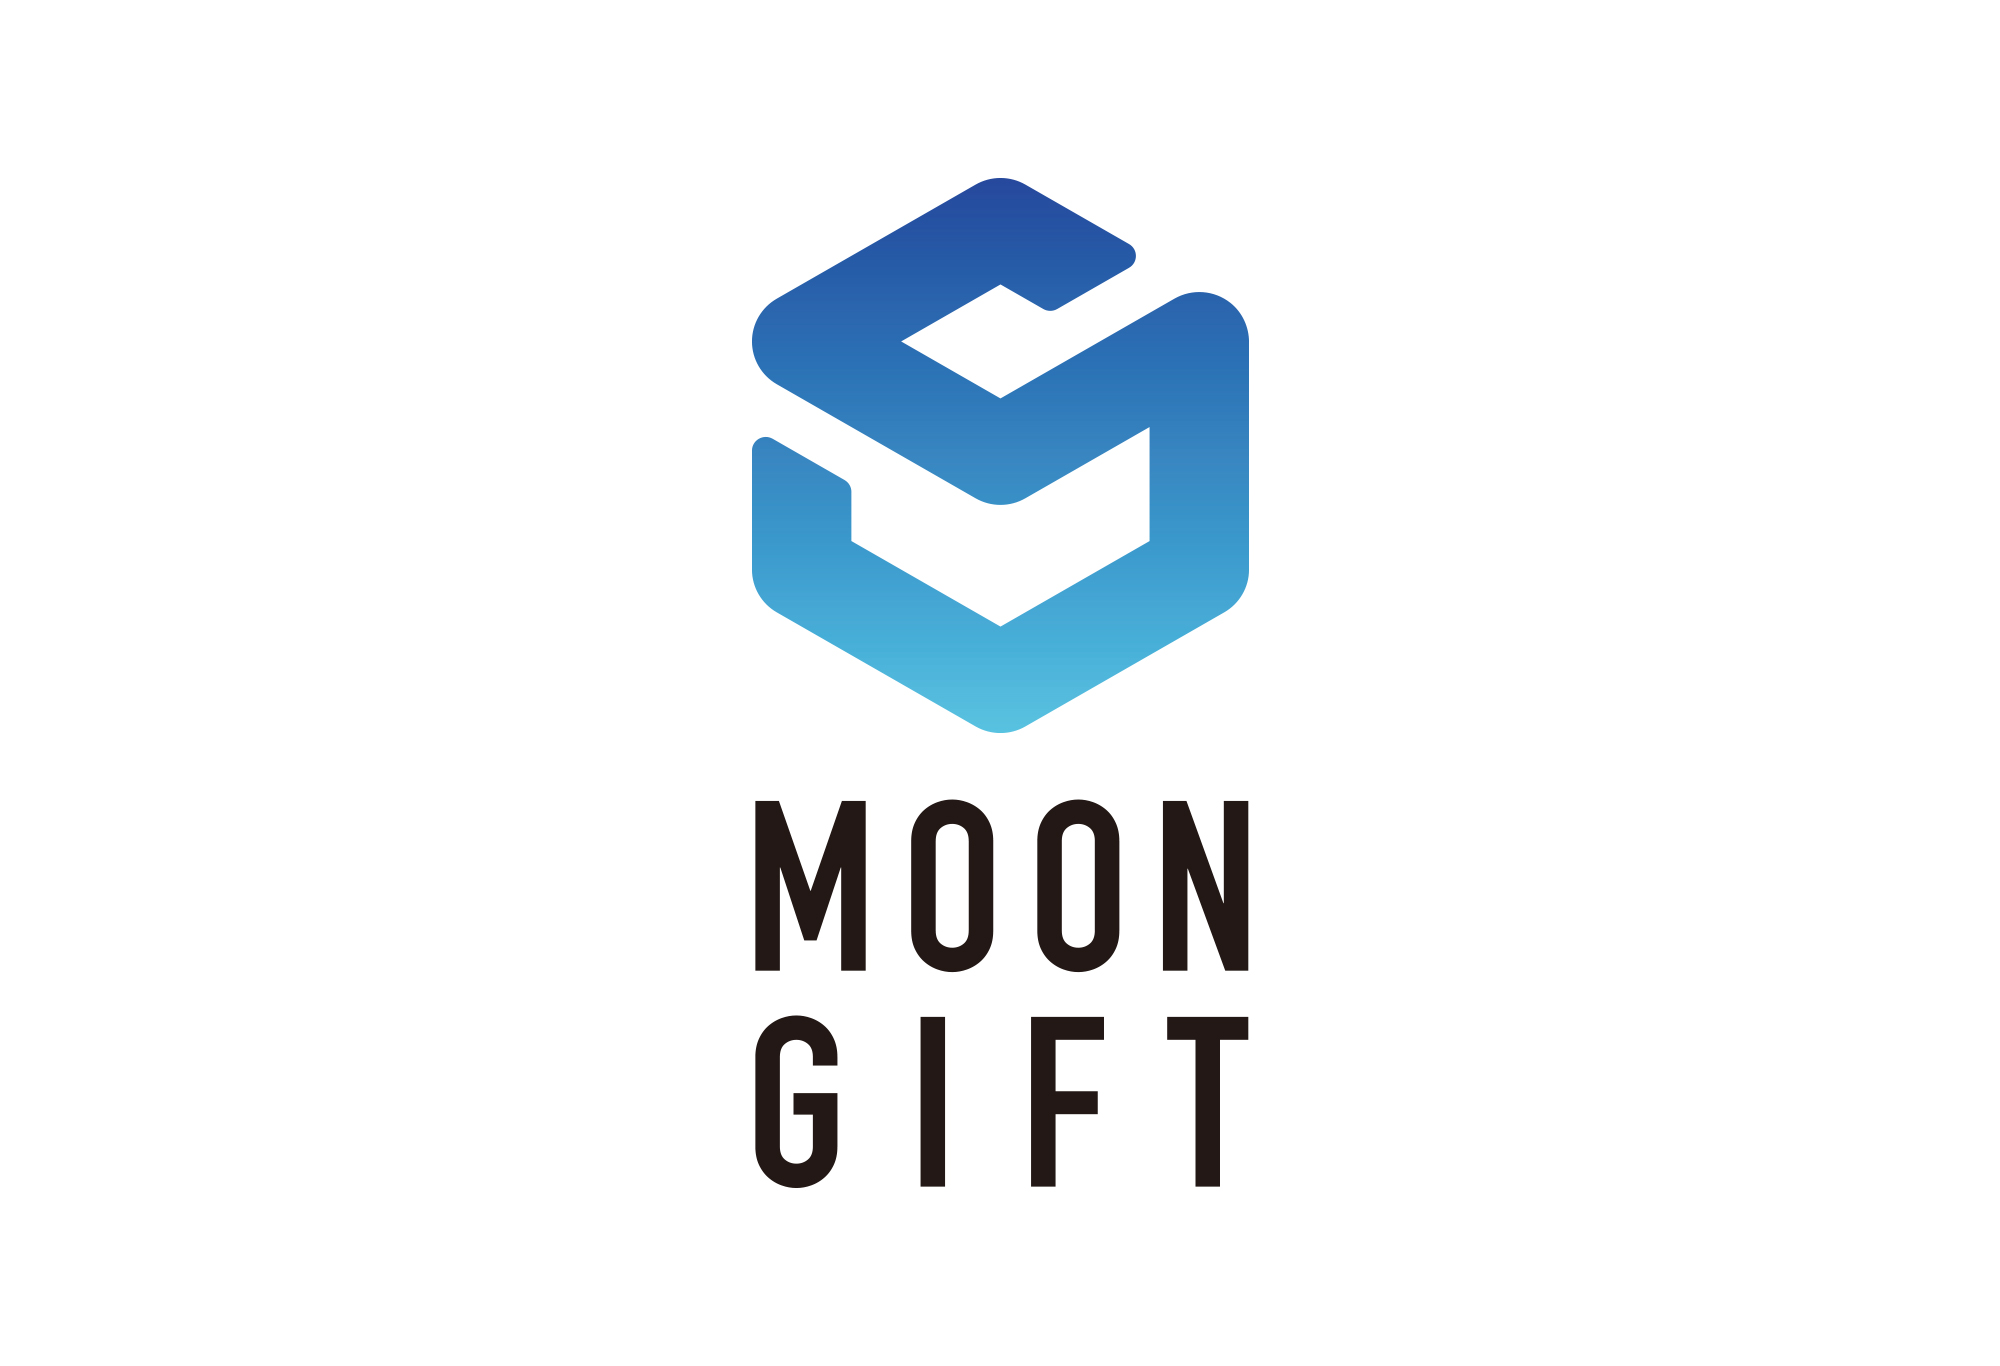 moongift1